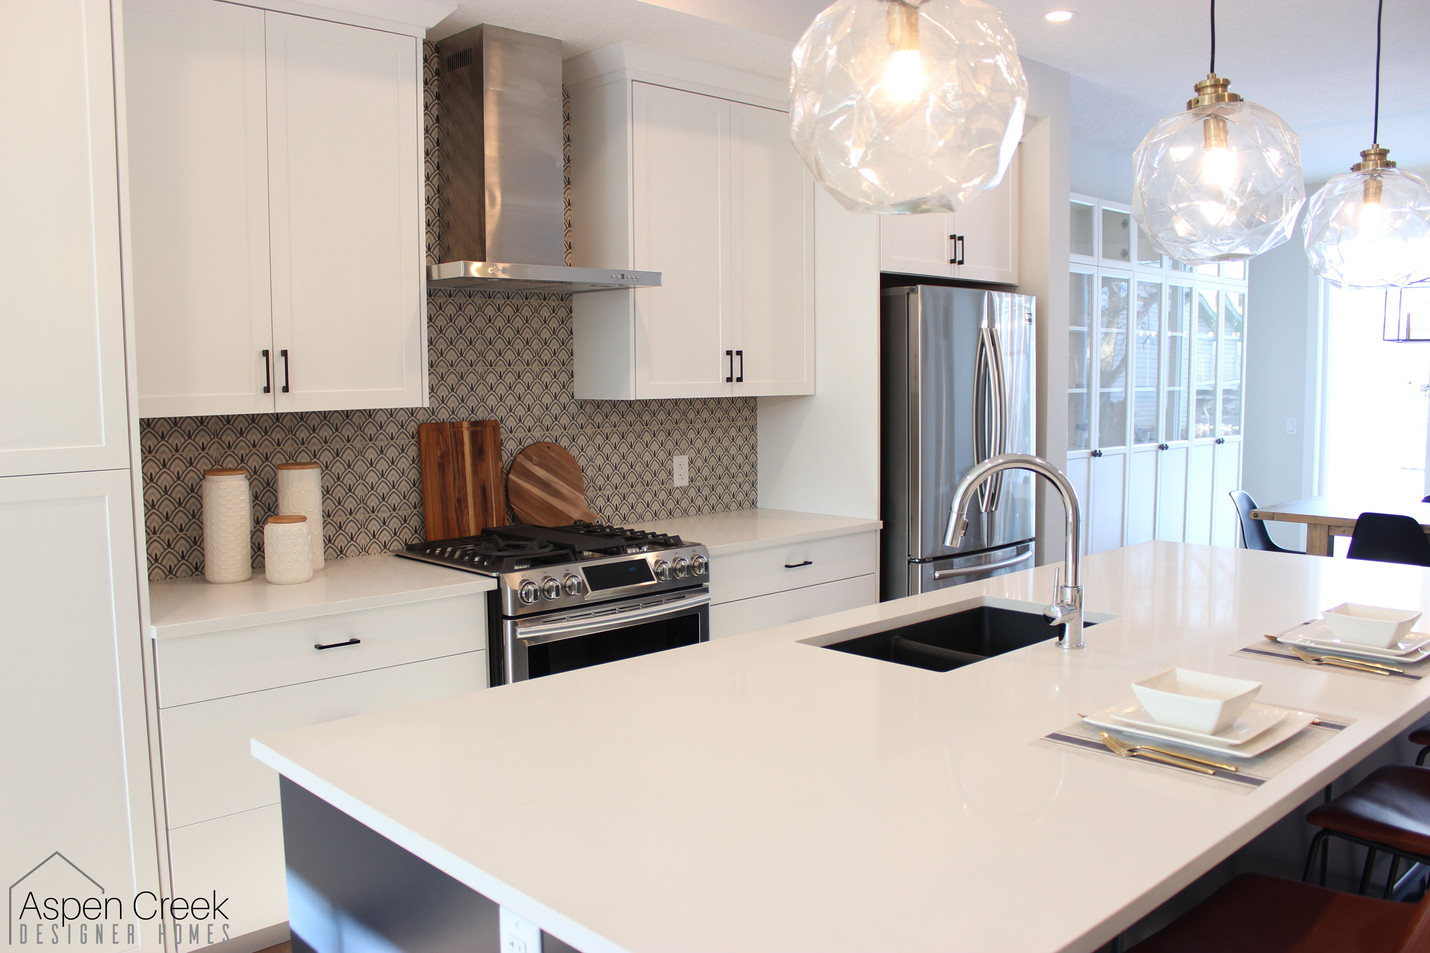 Light and bright kitchen interior design. With bold backsplash patterned cement tile that creates a focal point. The clean white island is perfect for family gatherings.